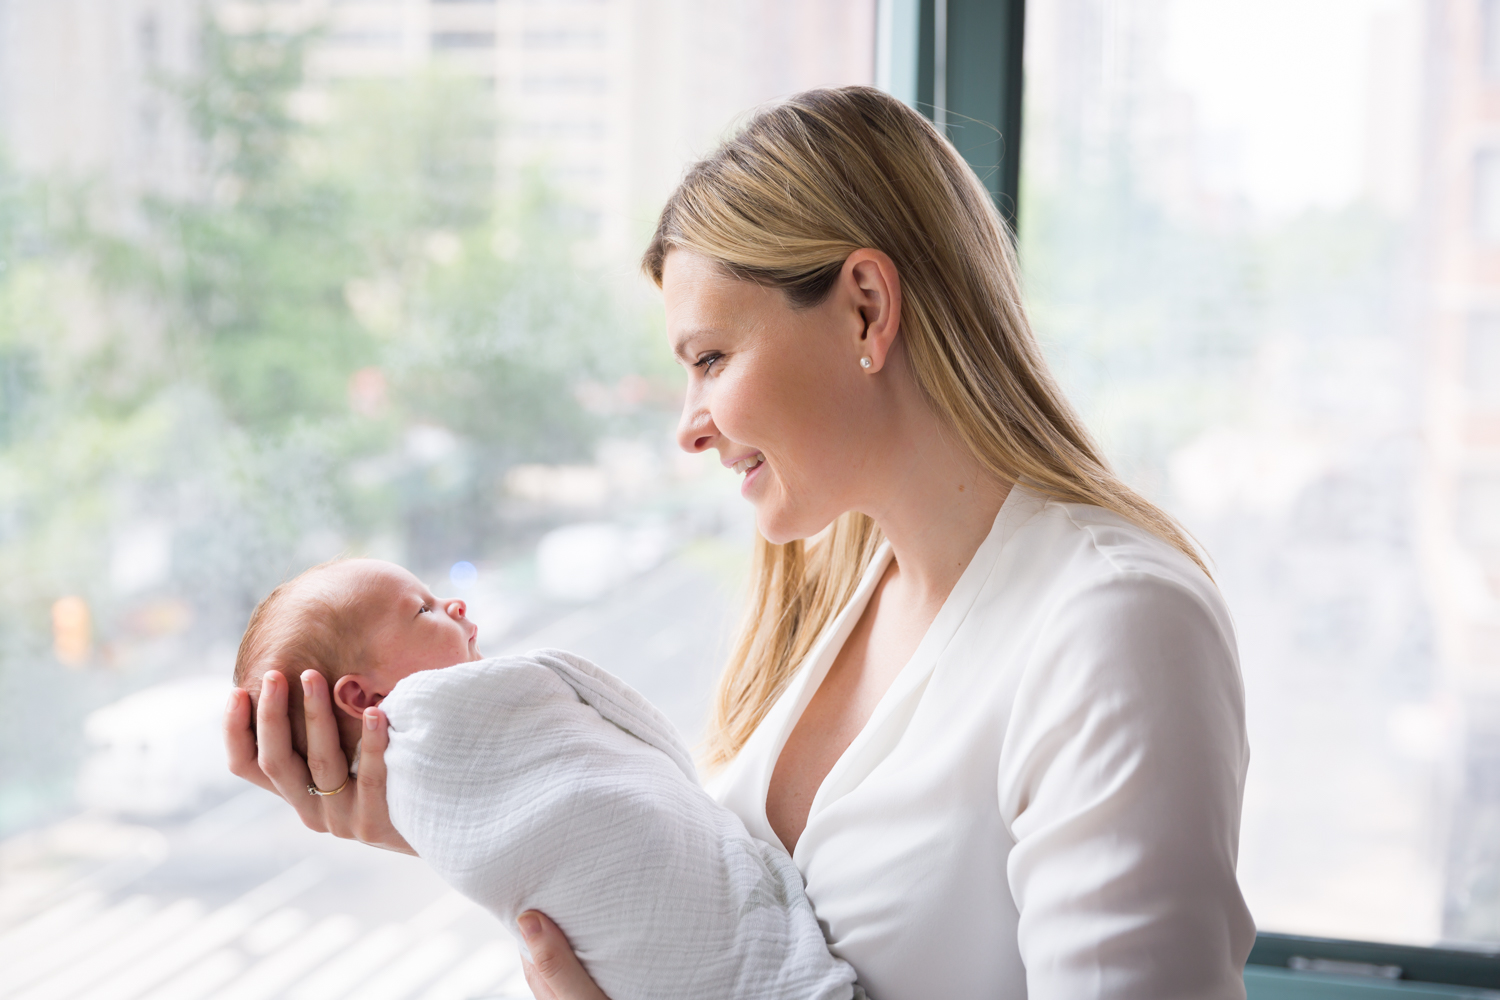 Mother holding newborn baby in front of window for an article on newborn portrait tips